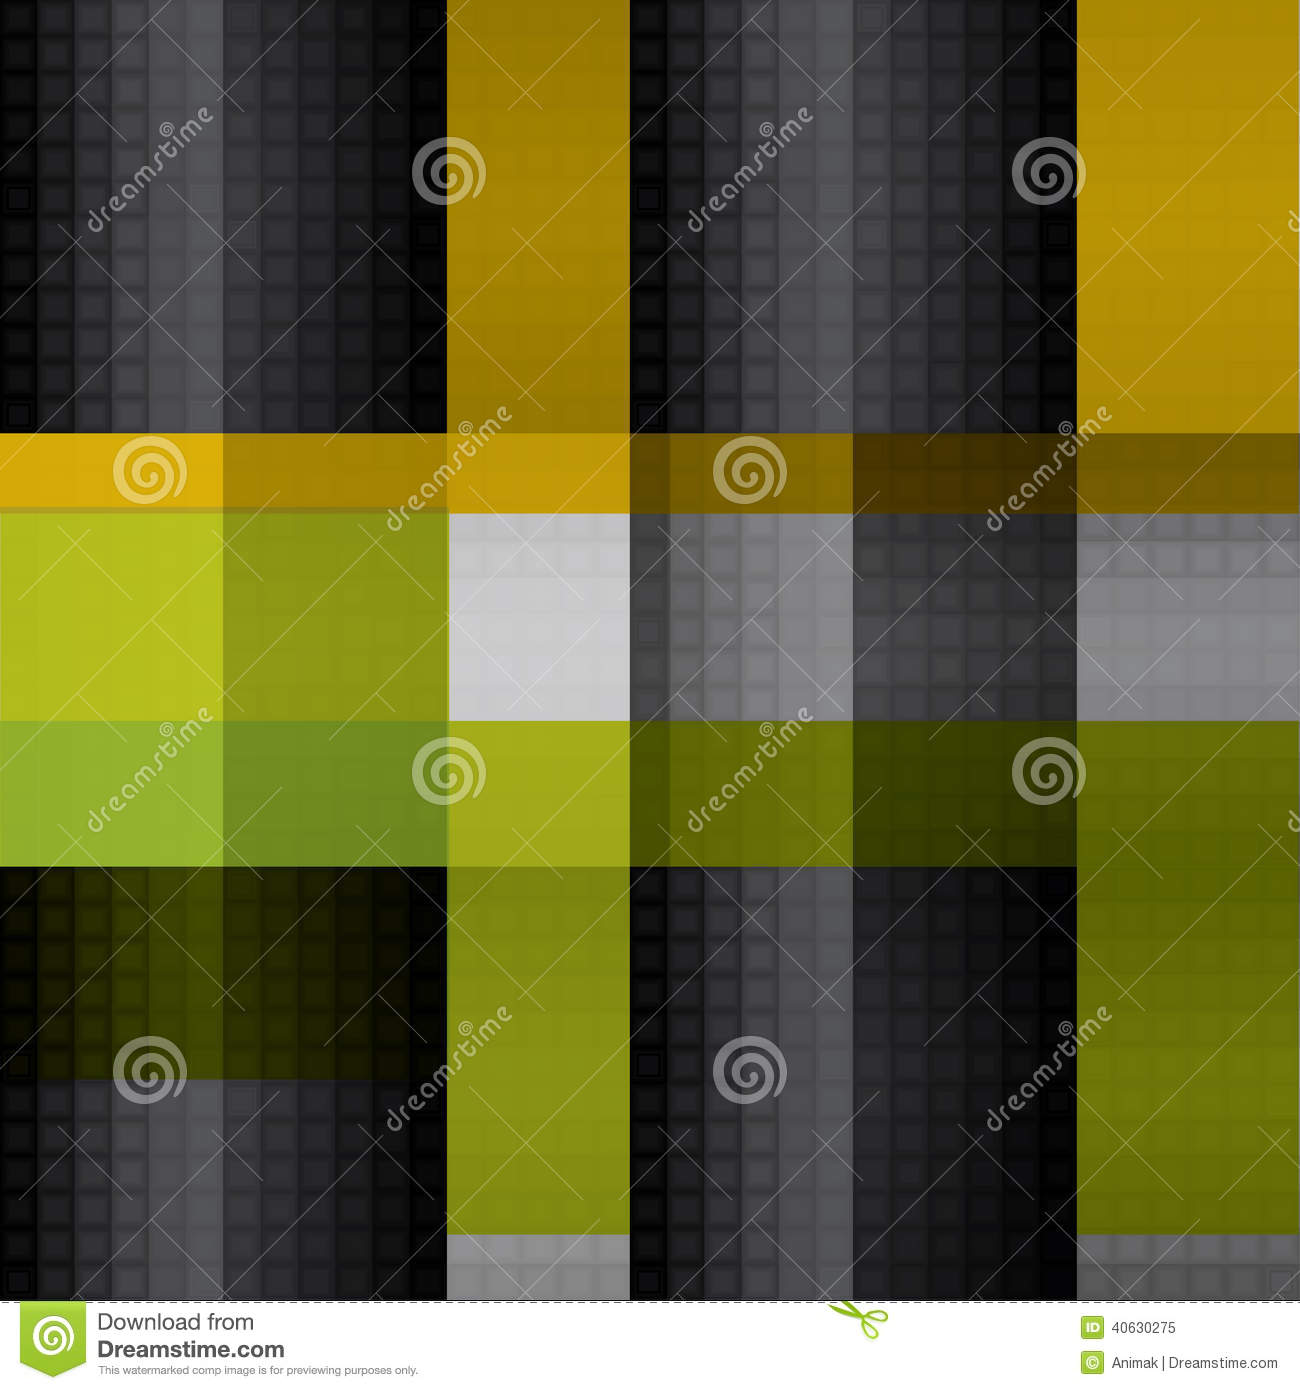 Background Design For Book Cover : Book cover design stock illustration image of movie